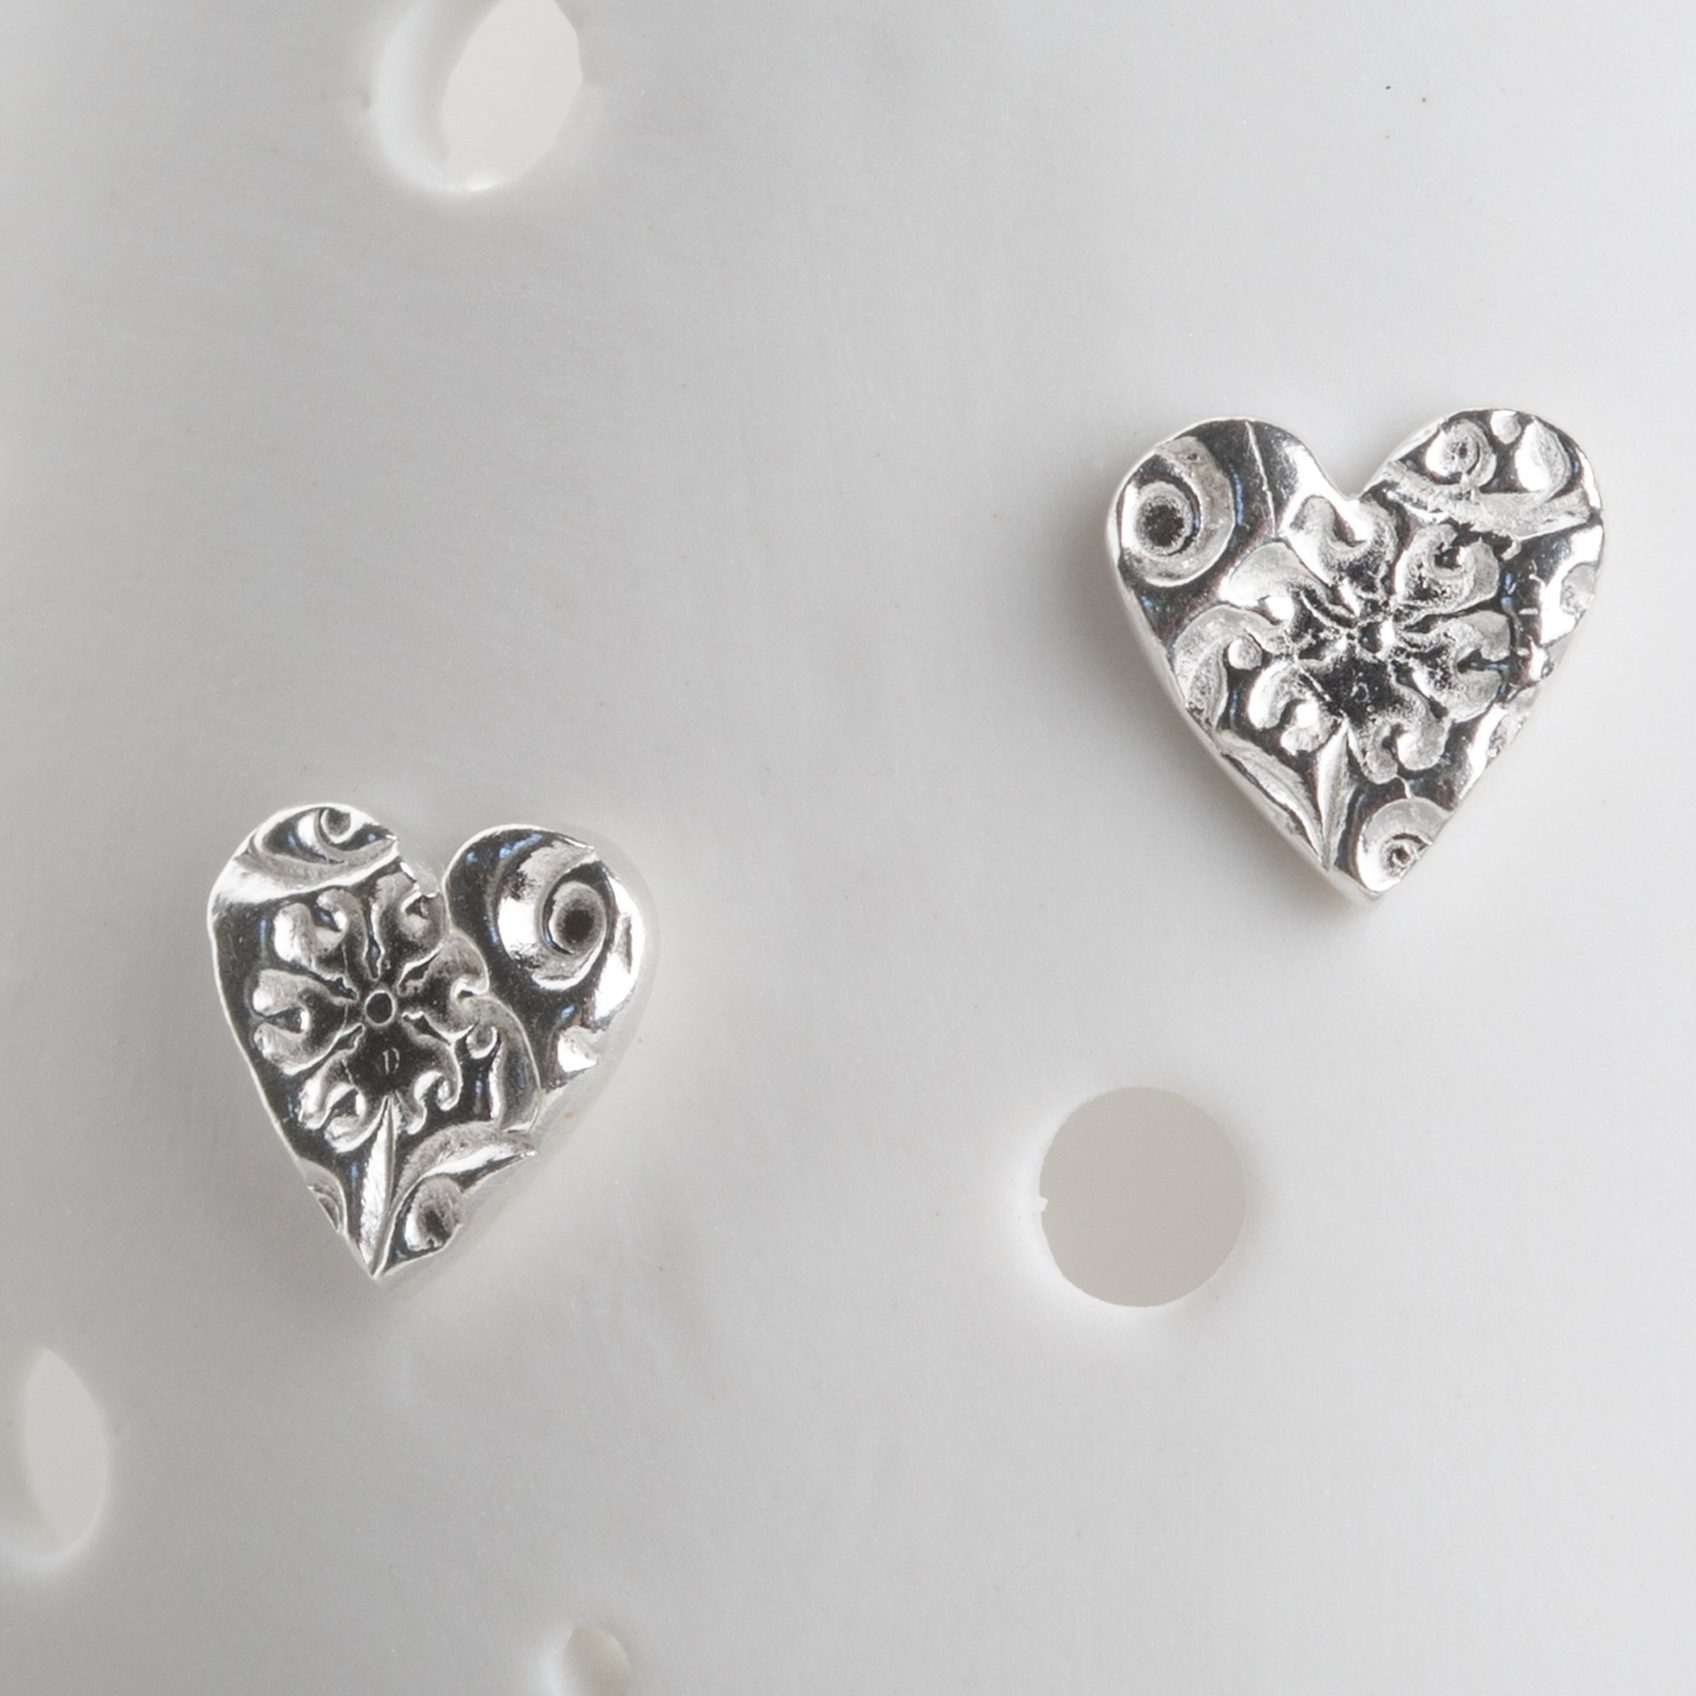 Cherry blossom silver heart studs, floral studs, silver heart earrings